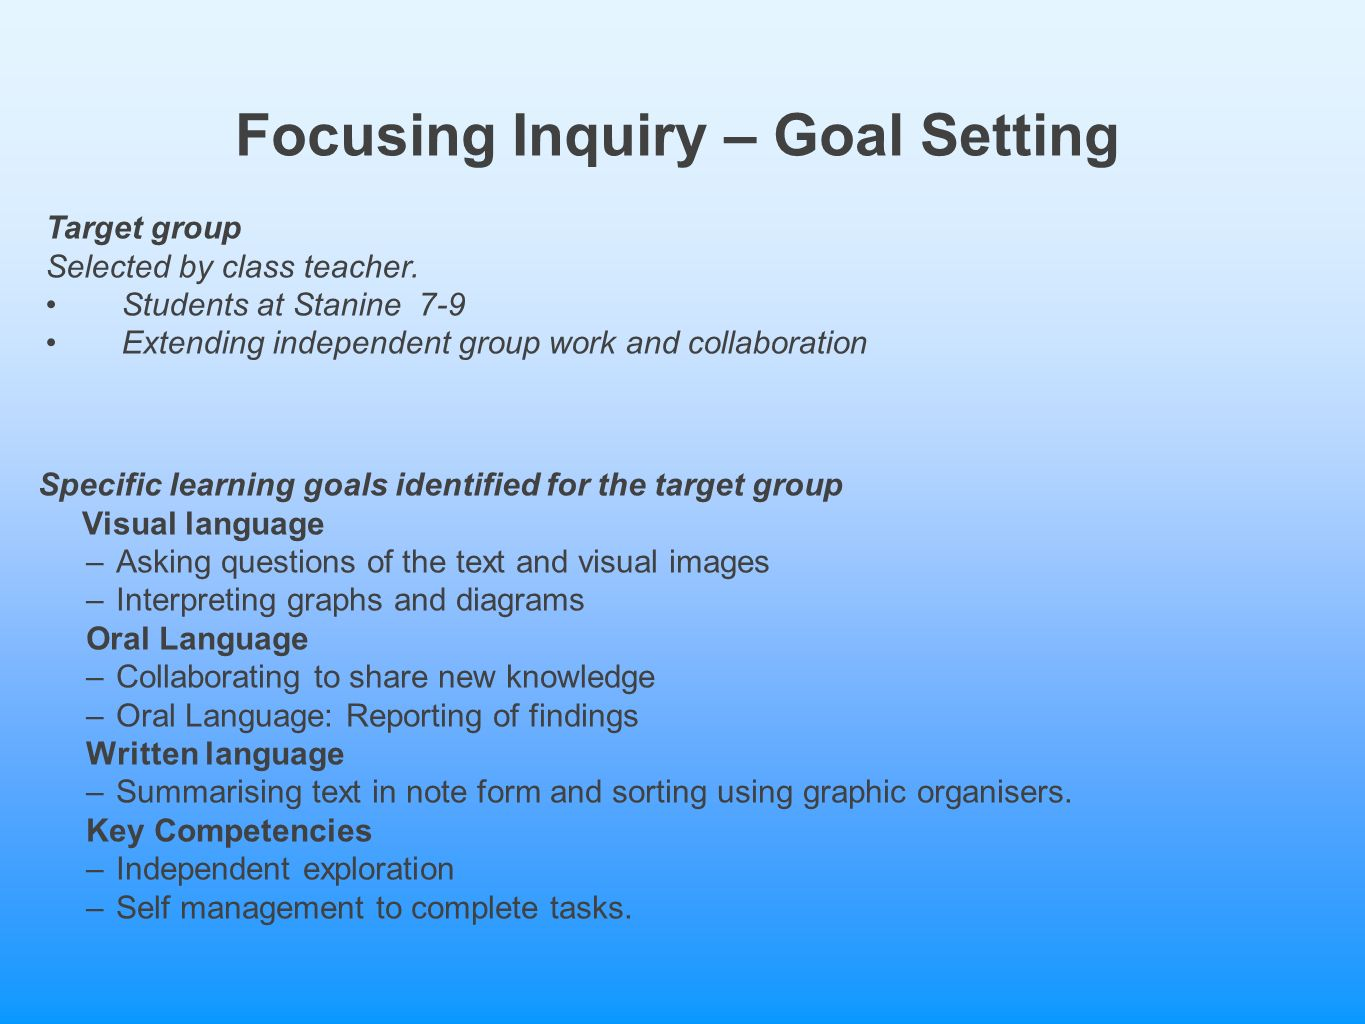 the target group visual language –asking questions of the text and  visual images –interpreting graphs and diagrams oral language  –collaborating to share